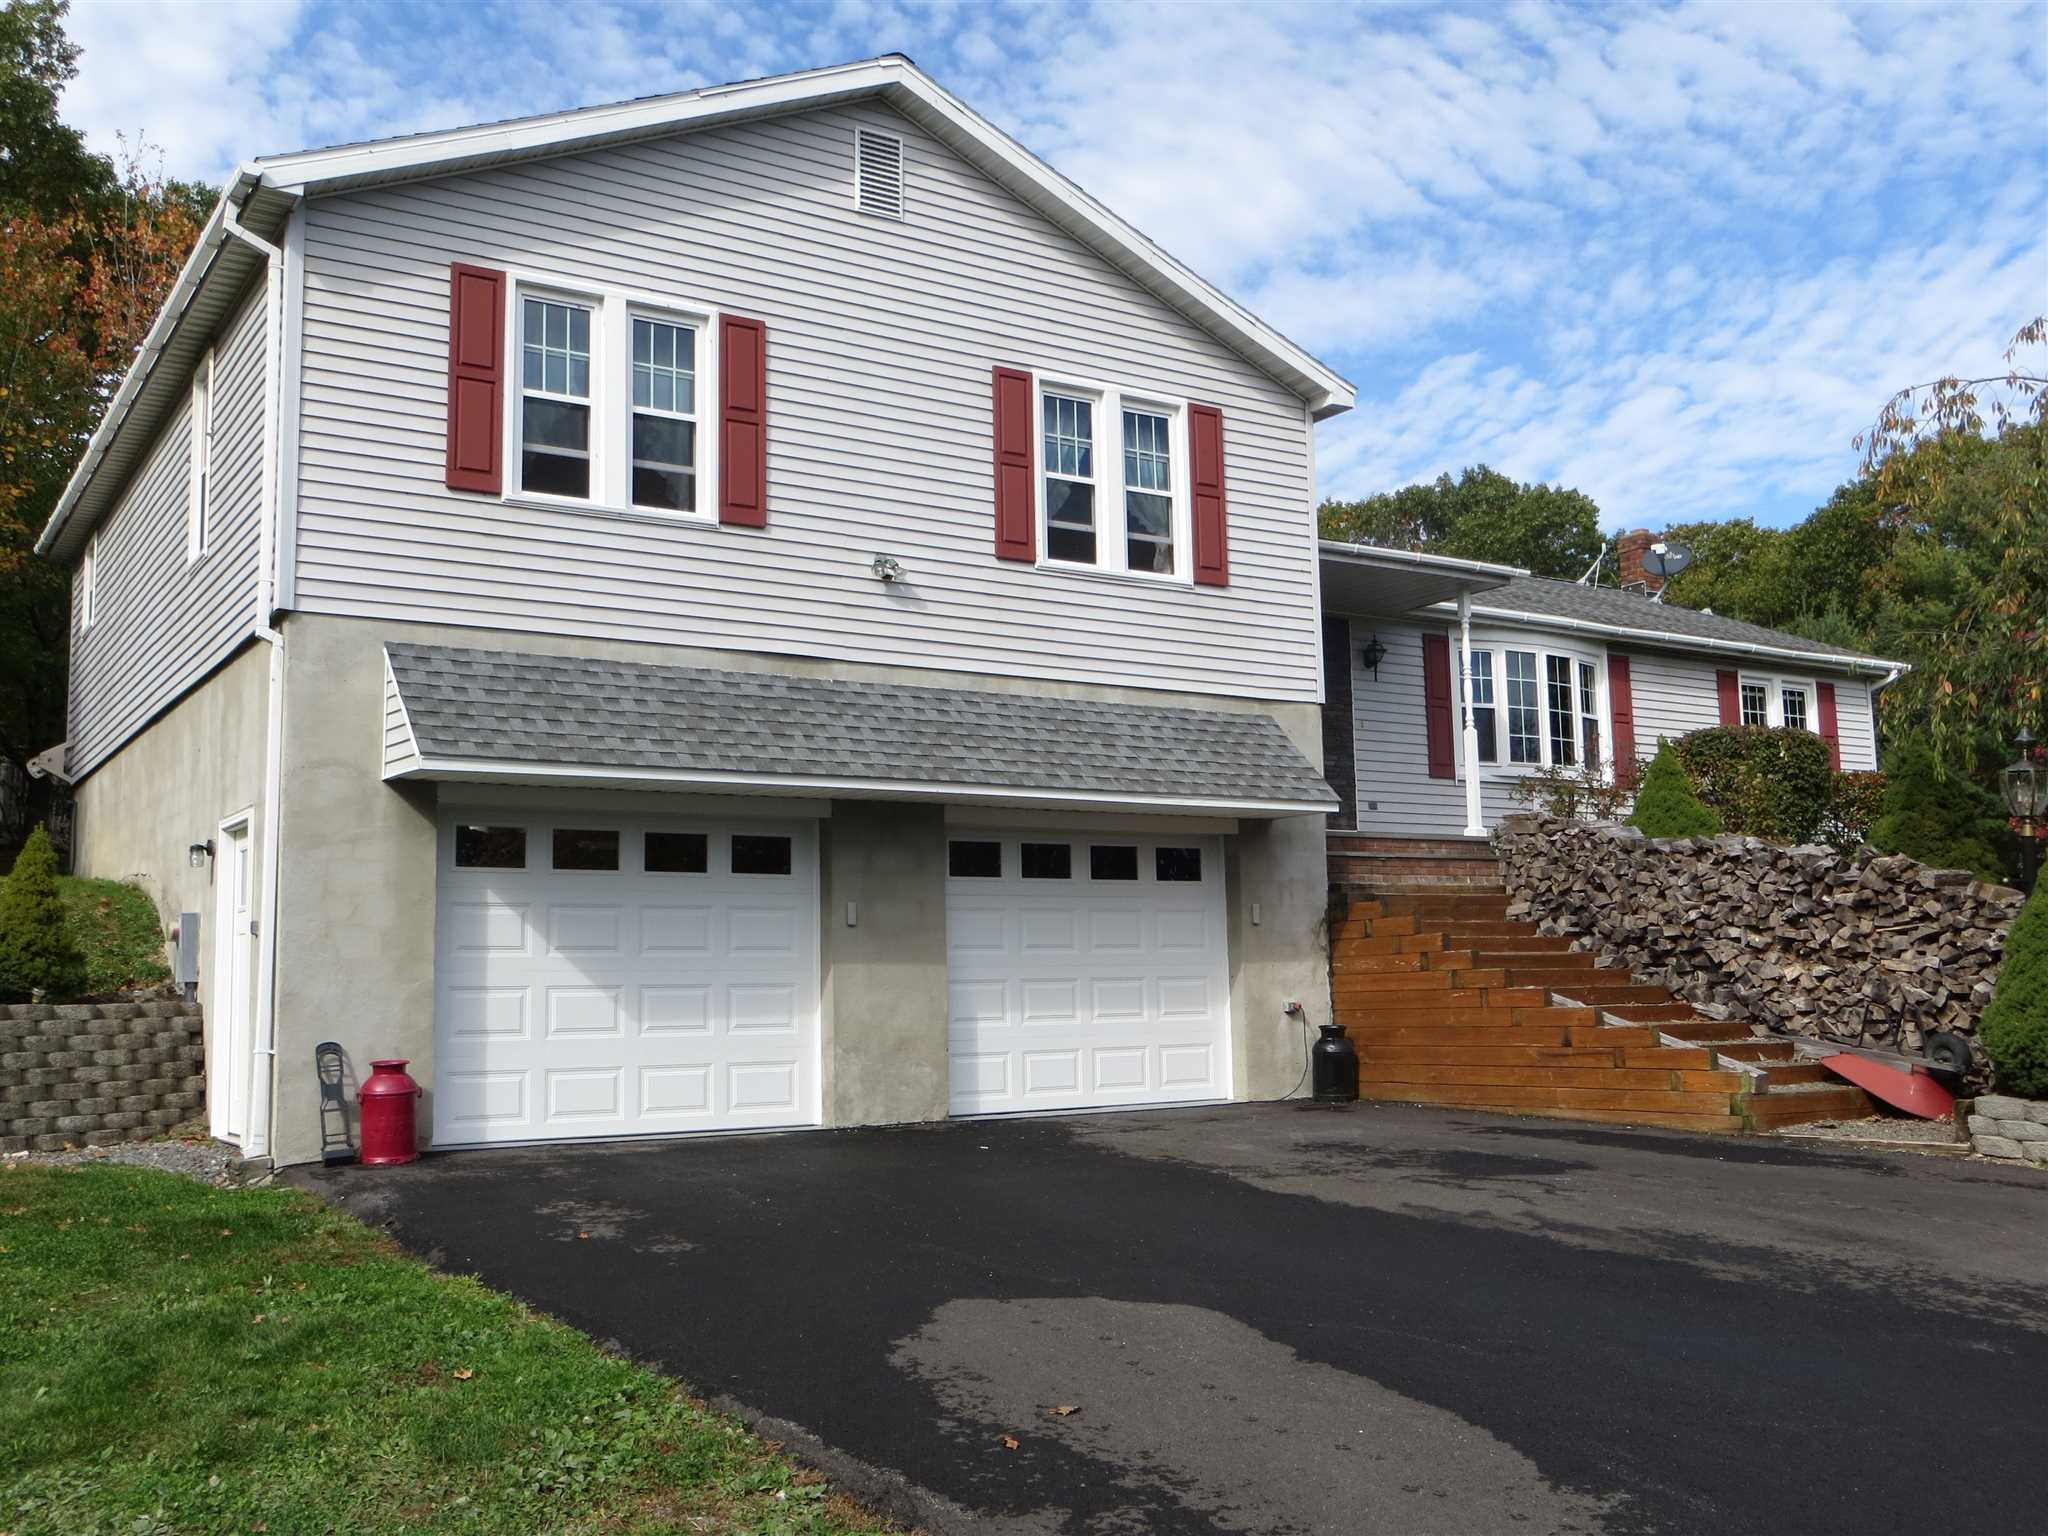 Single Family Home for Sale at 53 HULL 53 HULL Gallatin, New York 12523 United States